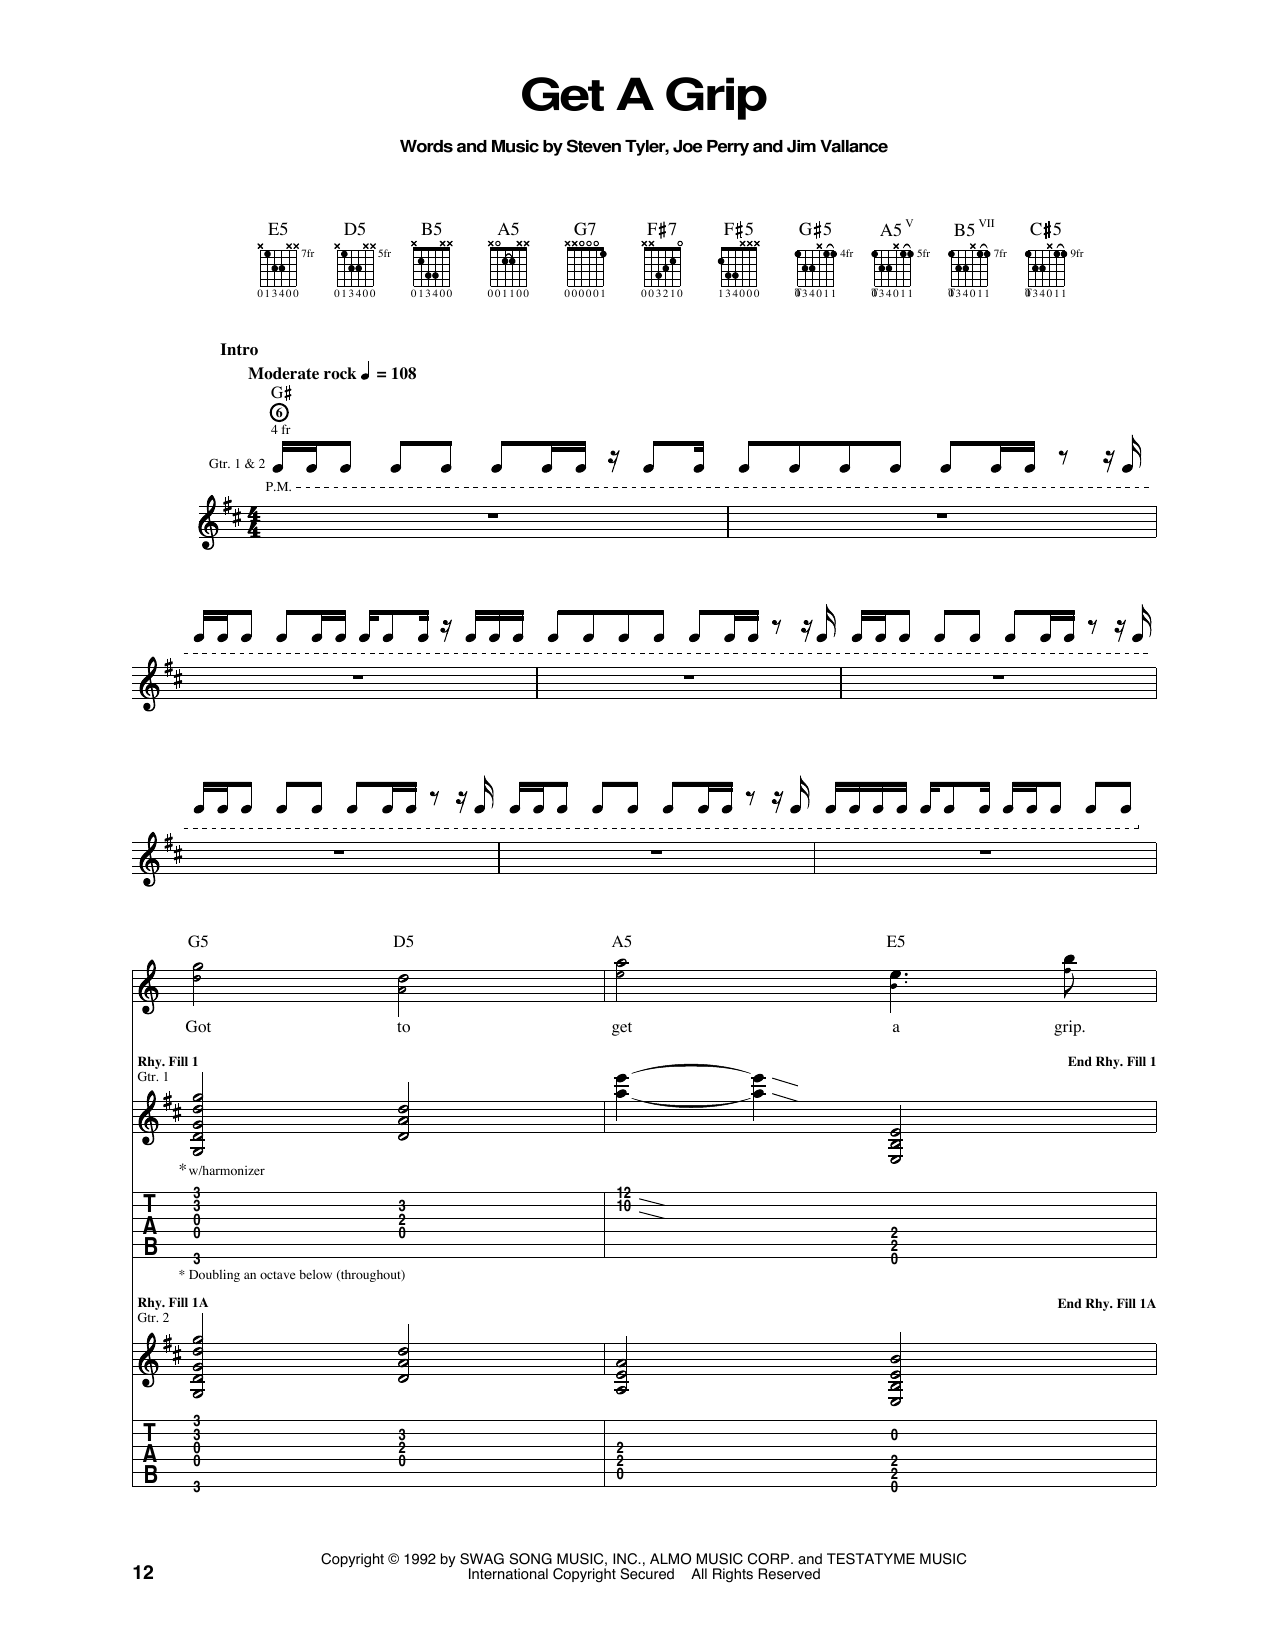 Get A Grip Sheet Music